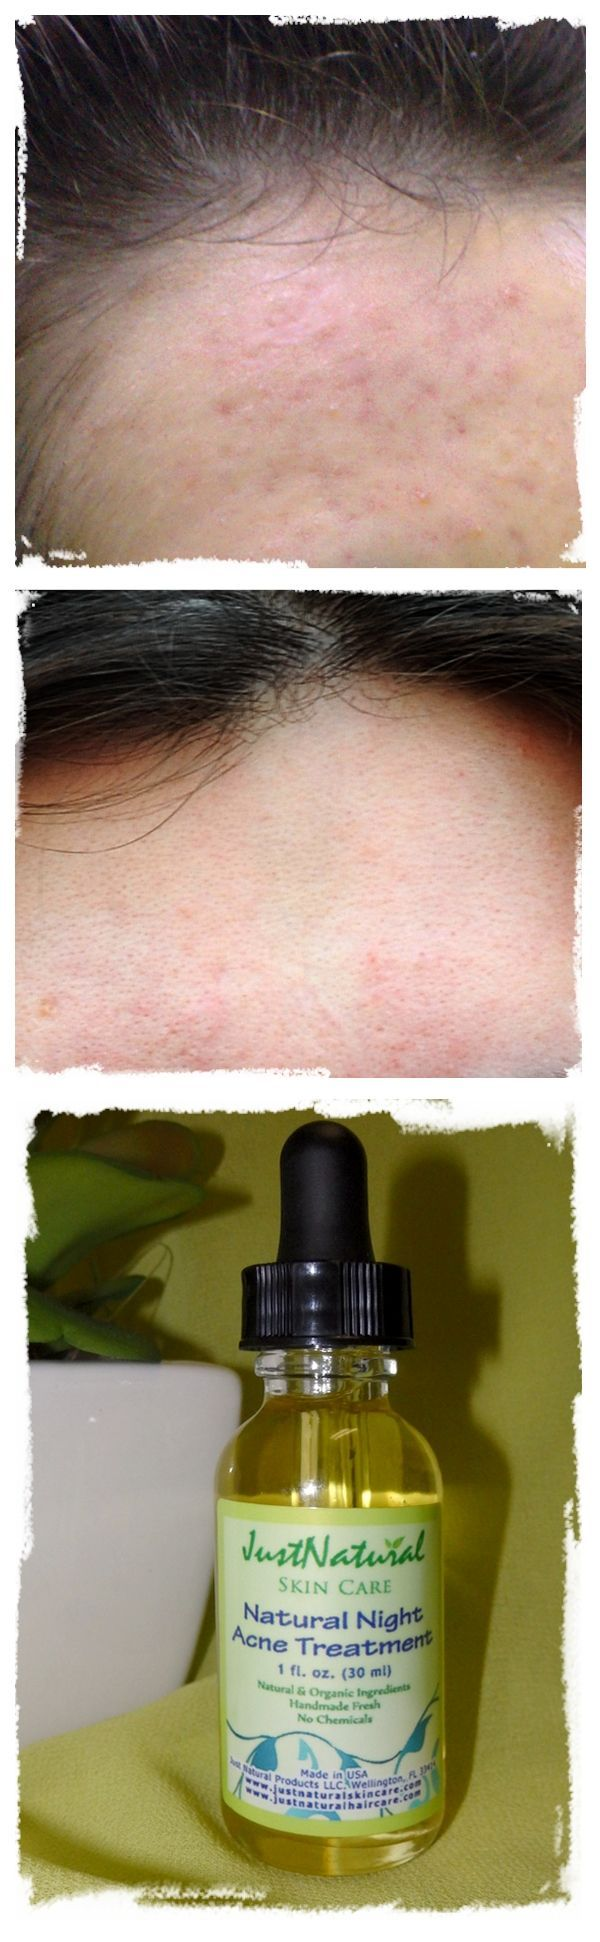 I started getting acne around age 15, face, back, …